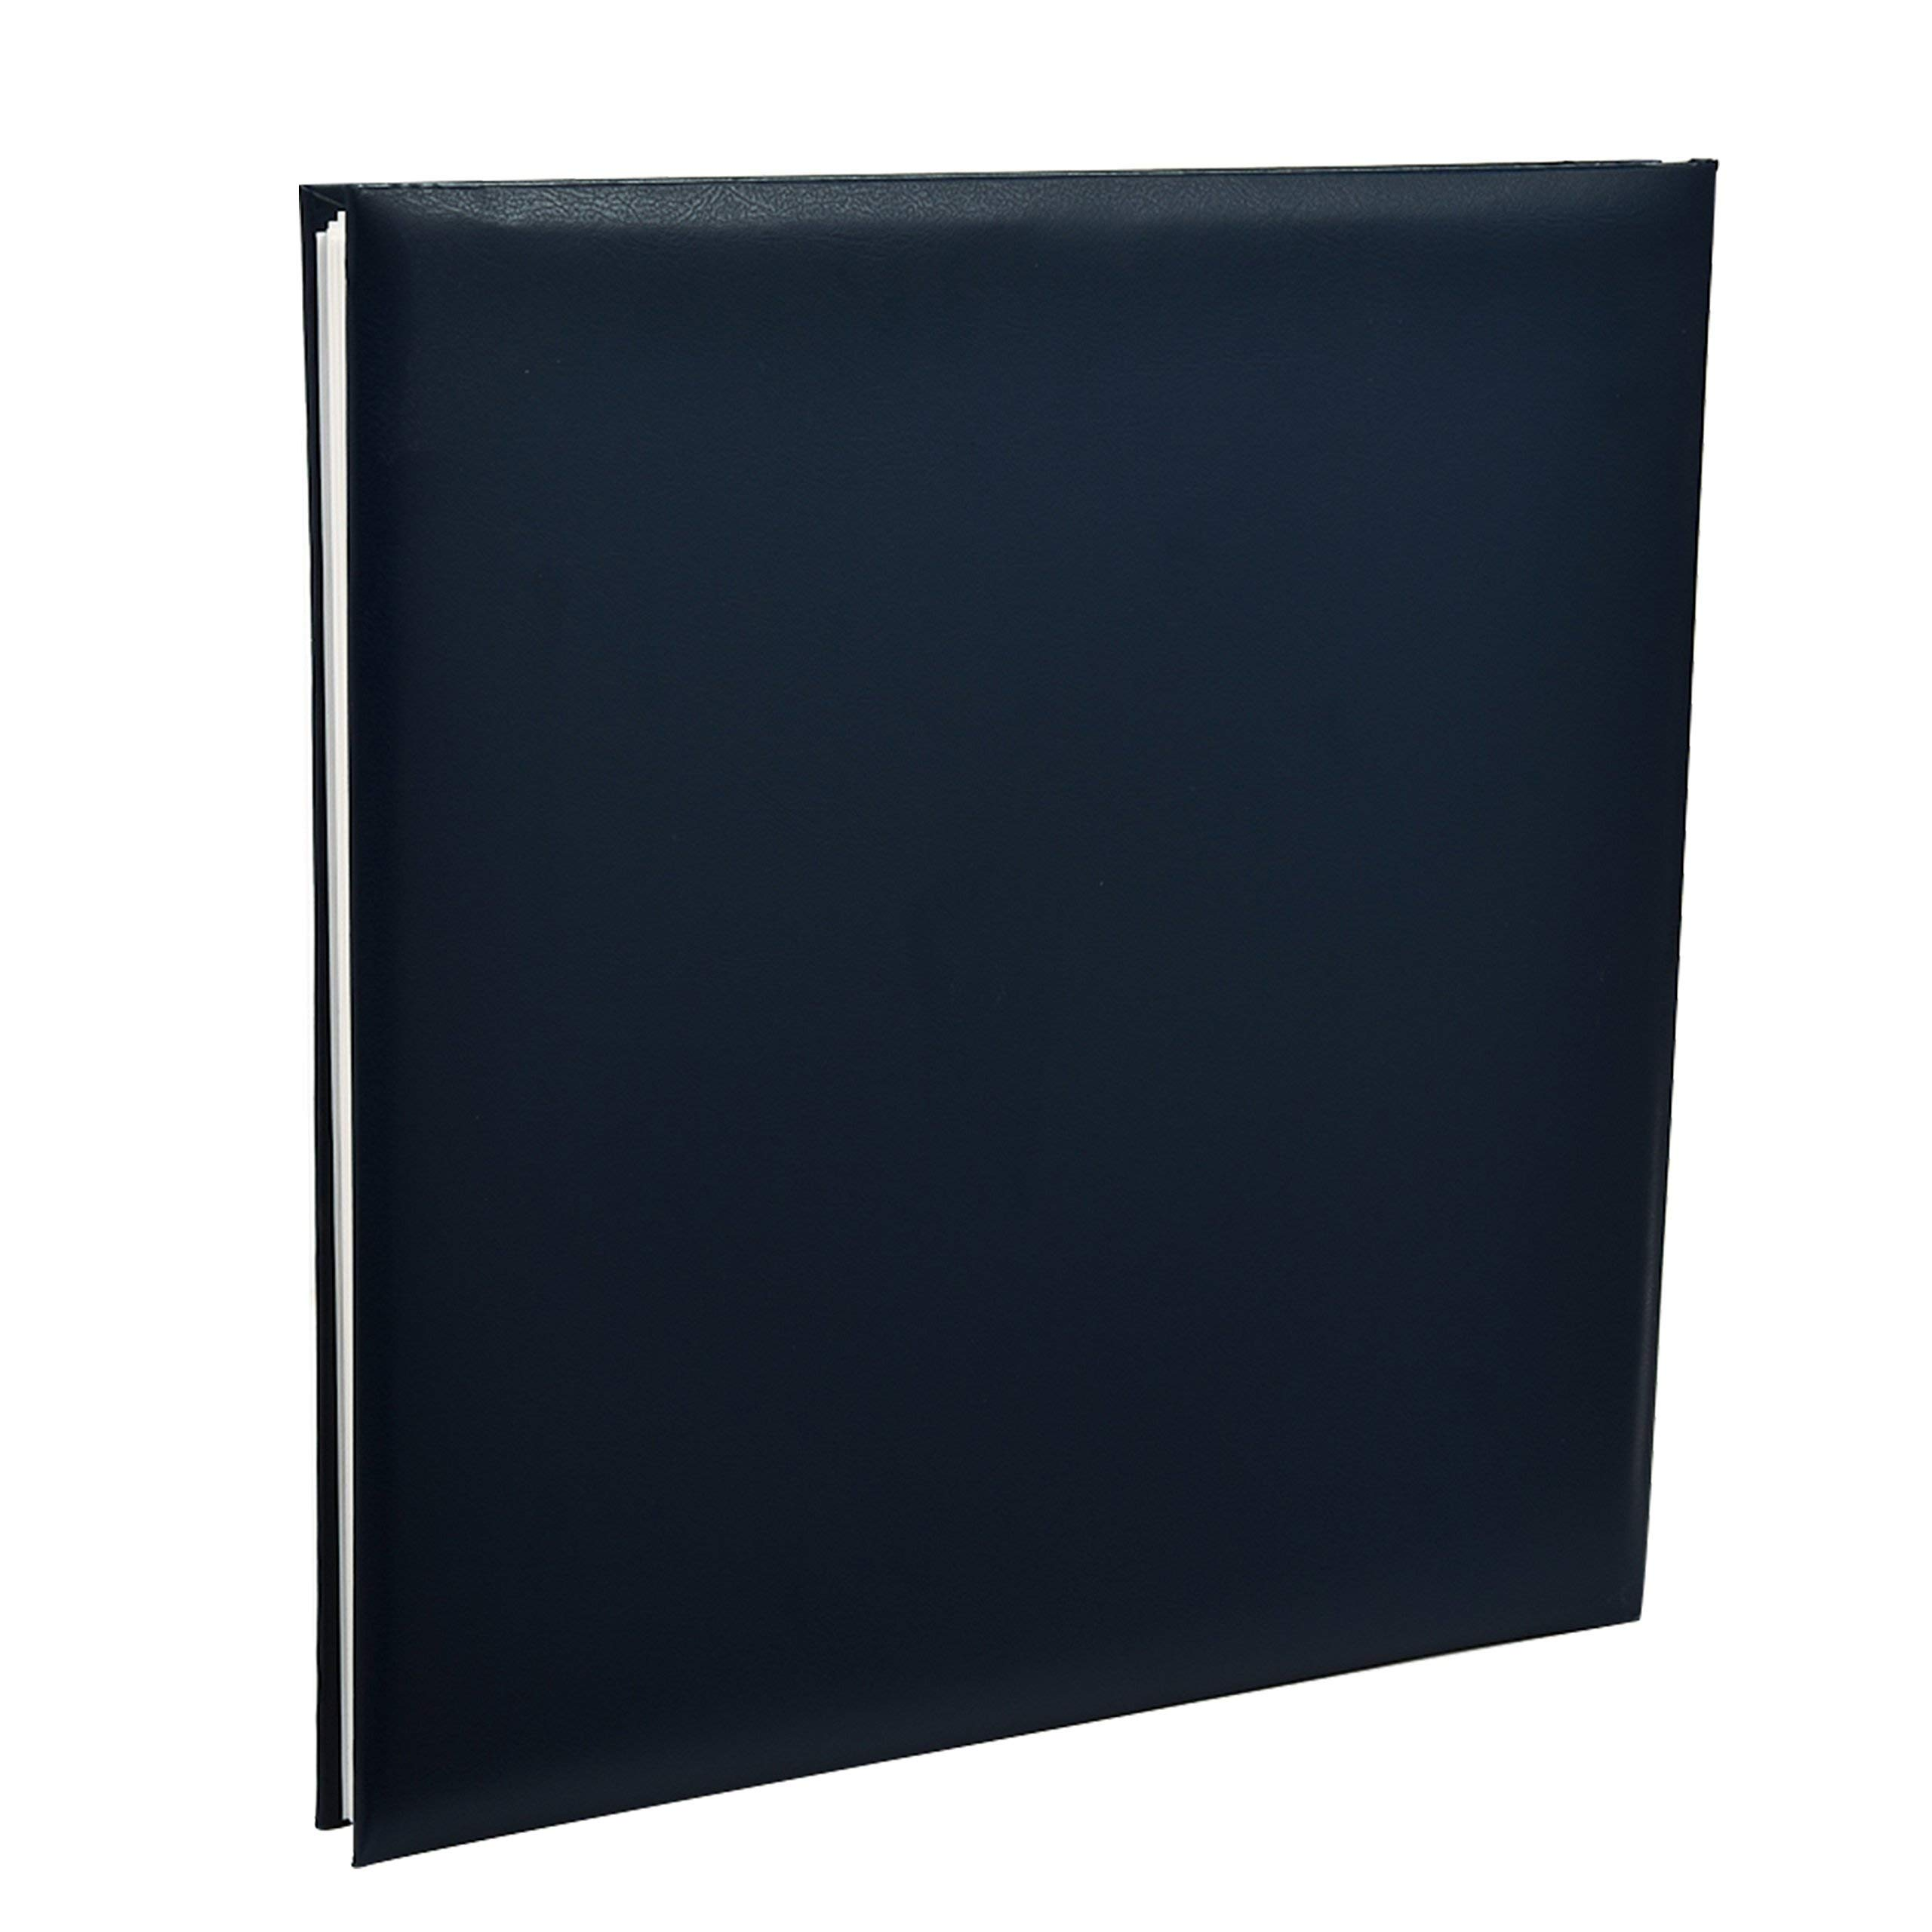 KD148 Kenro Classic Navy Blue Faux Leather Photo Album Traditional Design in Two-Tone with Gold Strip for 100 Photos A4 // 21x29.7cm with Memo Space Beside Each Photograph and Slip-in Pages Grace Series